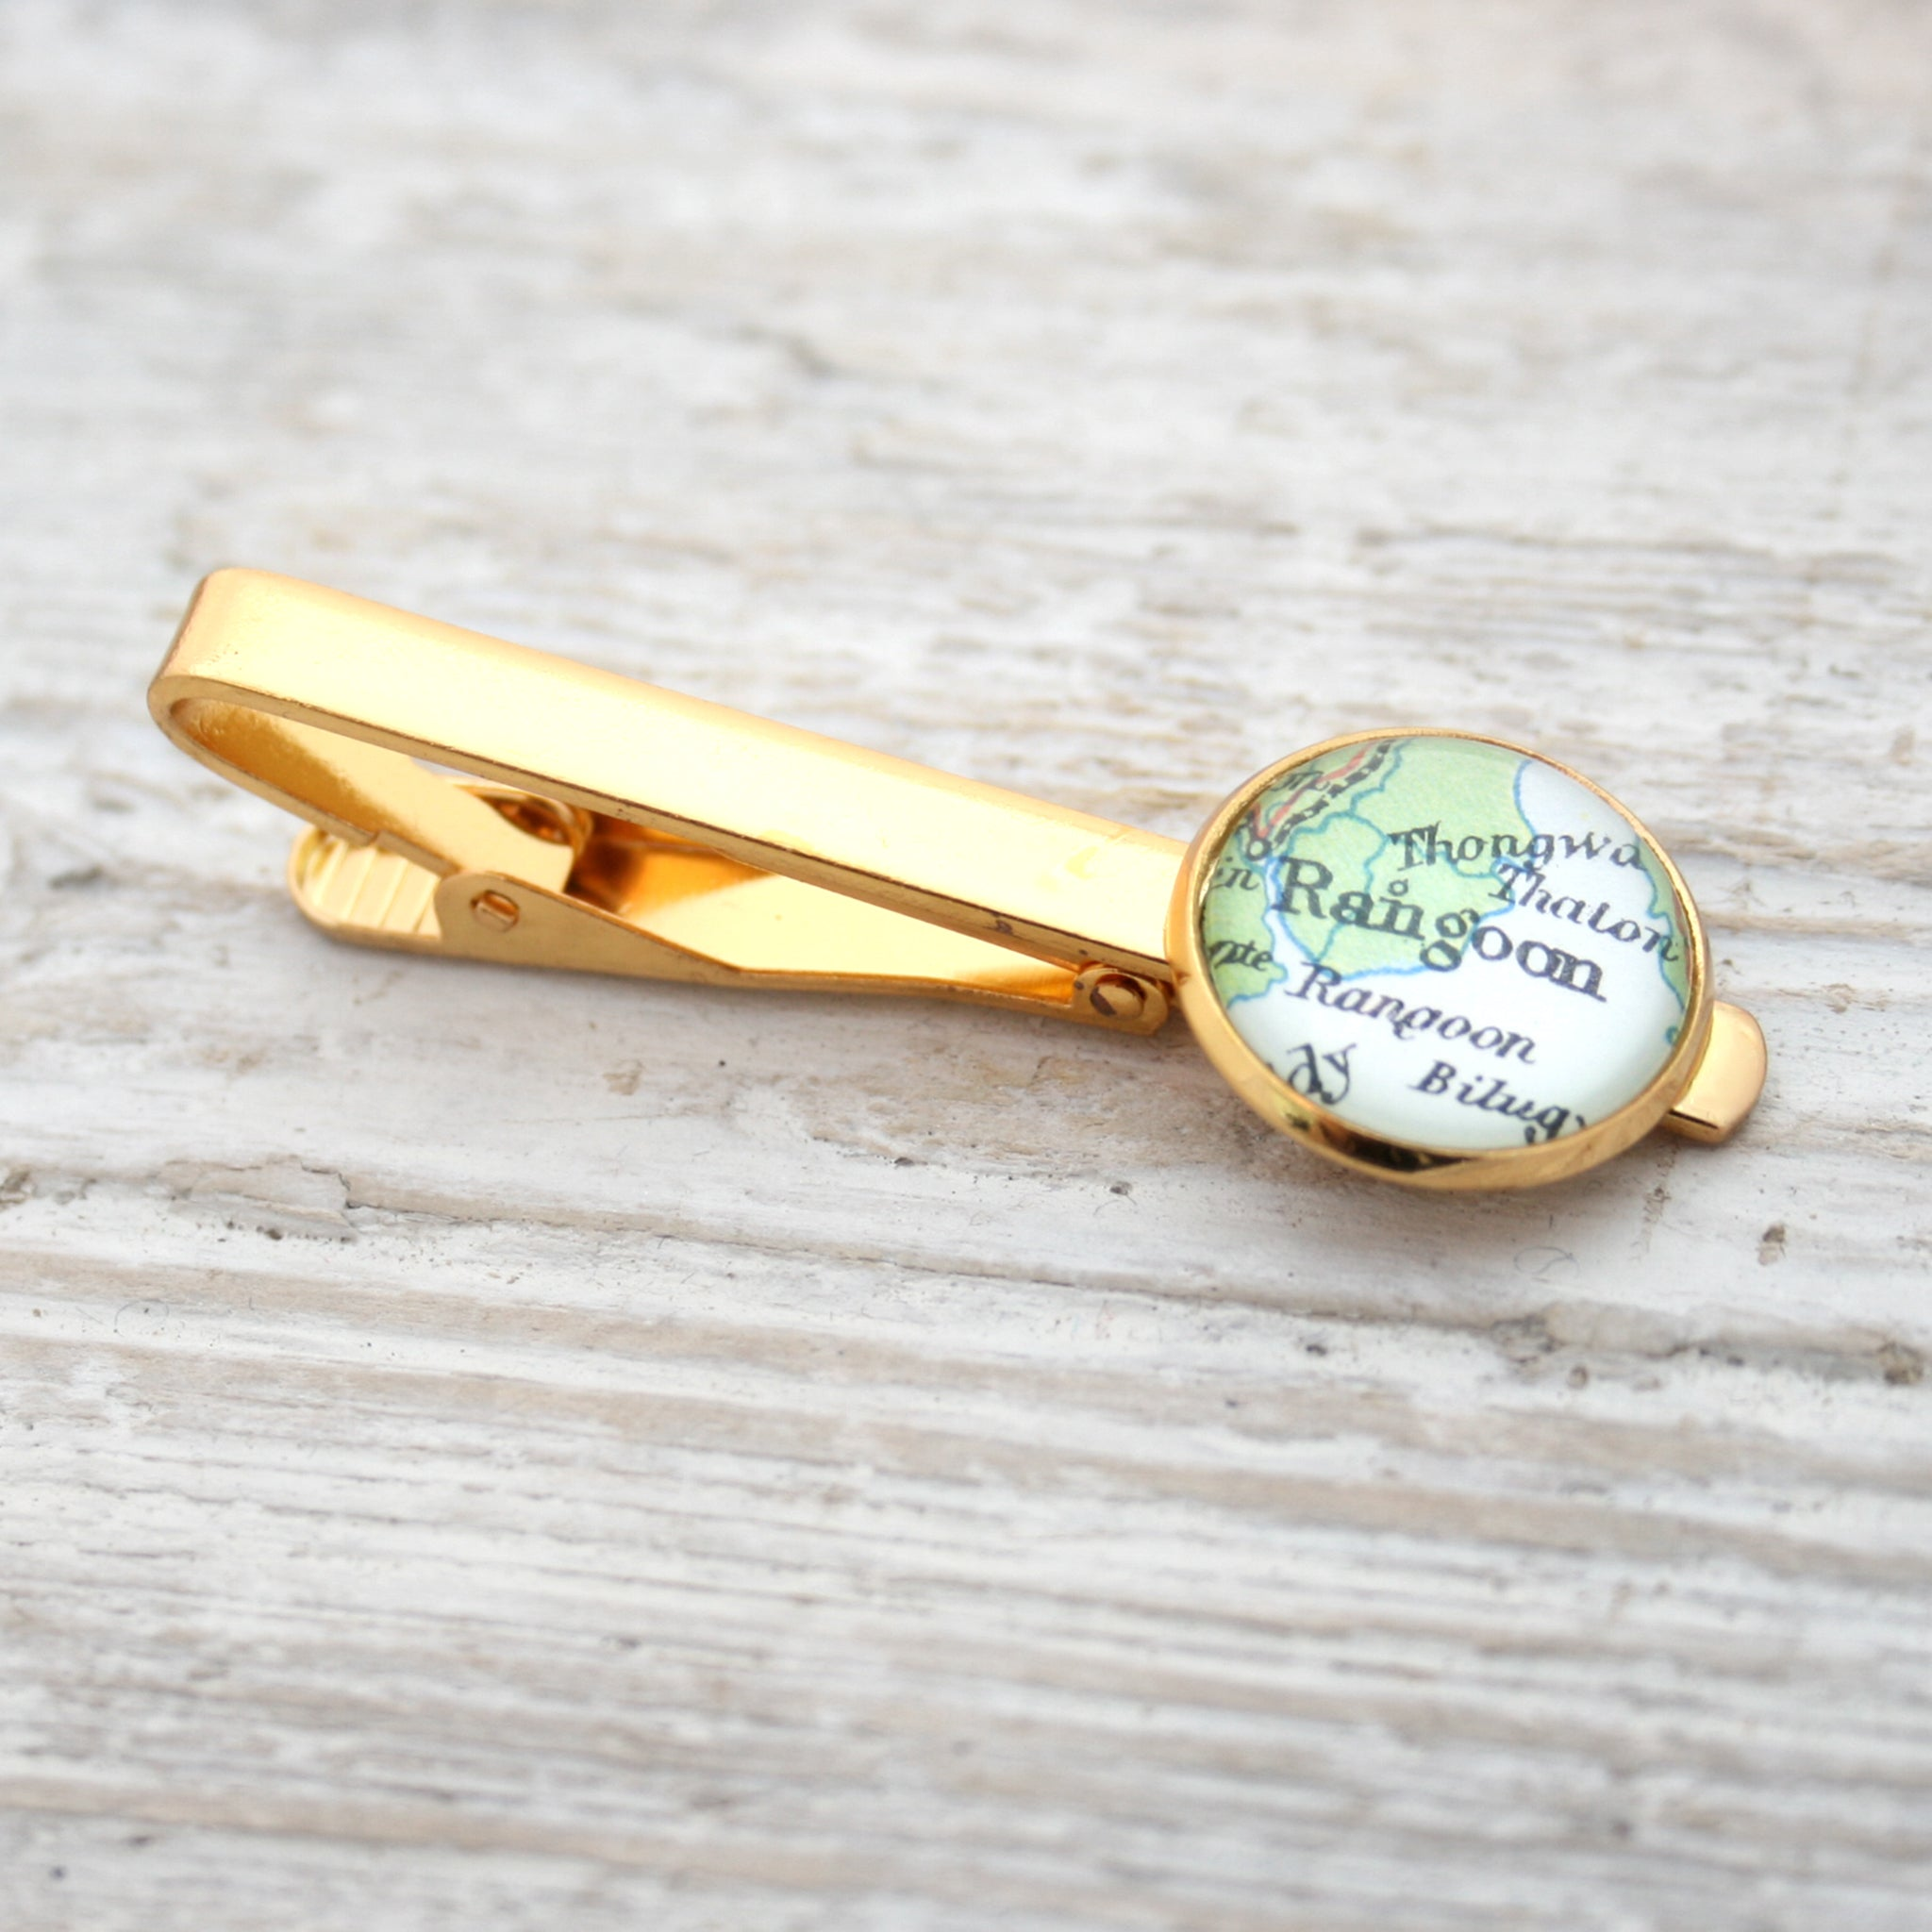 Personalised Tie Clip in gold color featuring map of Rangoon